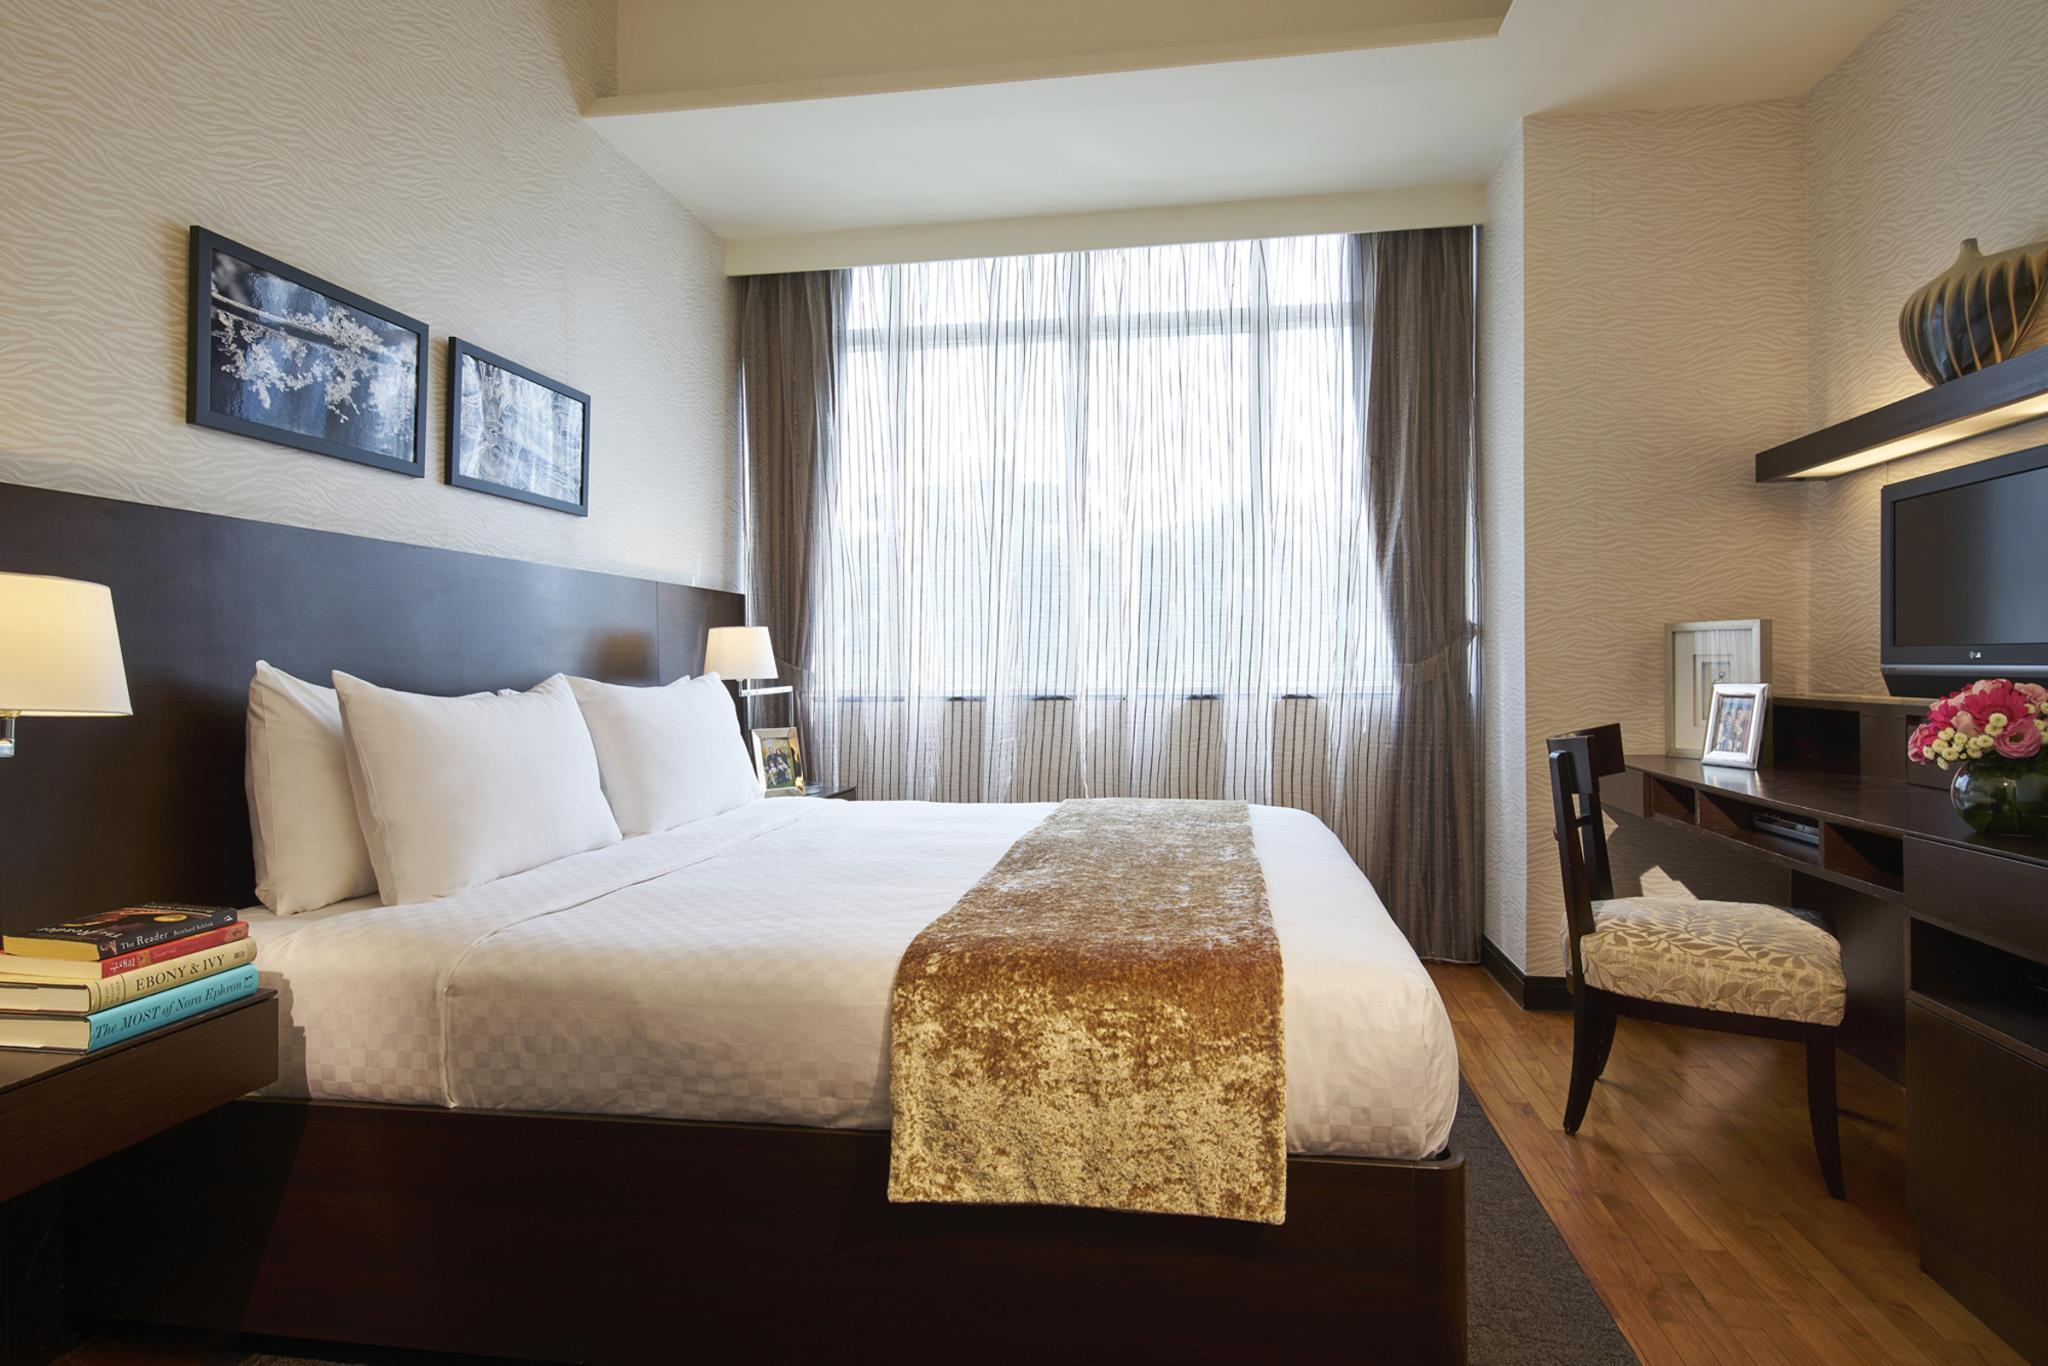 Orchard scotts residences by far east hospitality in - 2 bedroom hotel suites singapore ...